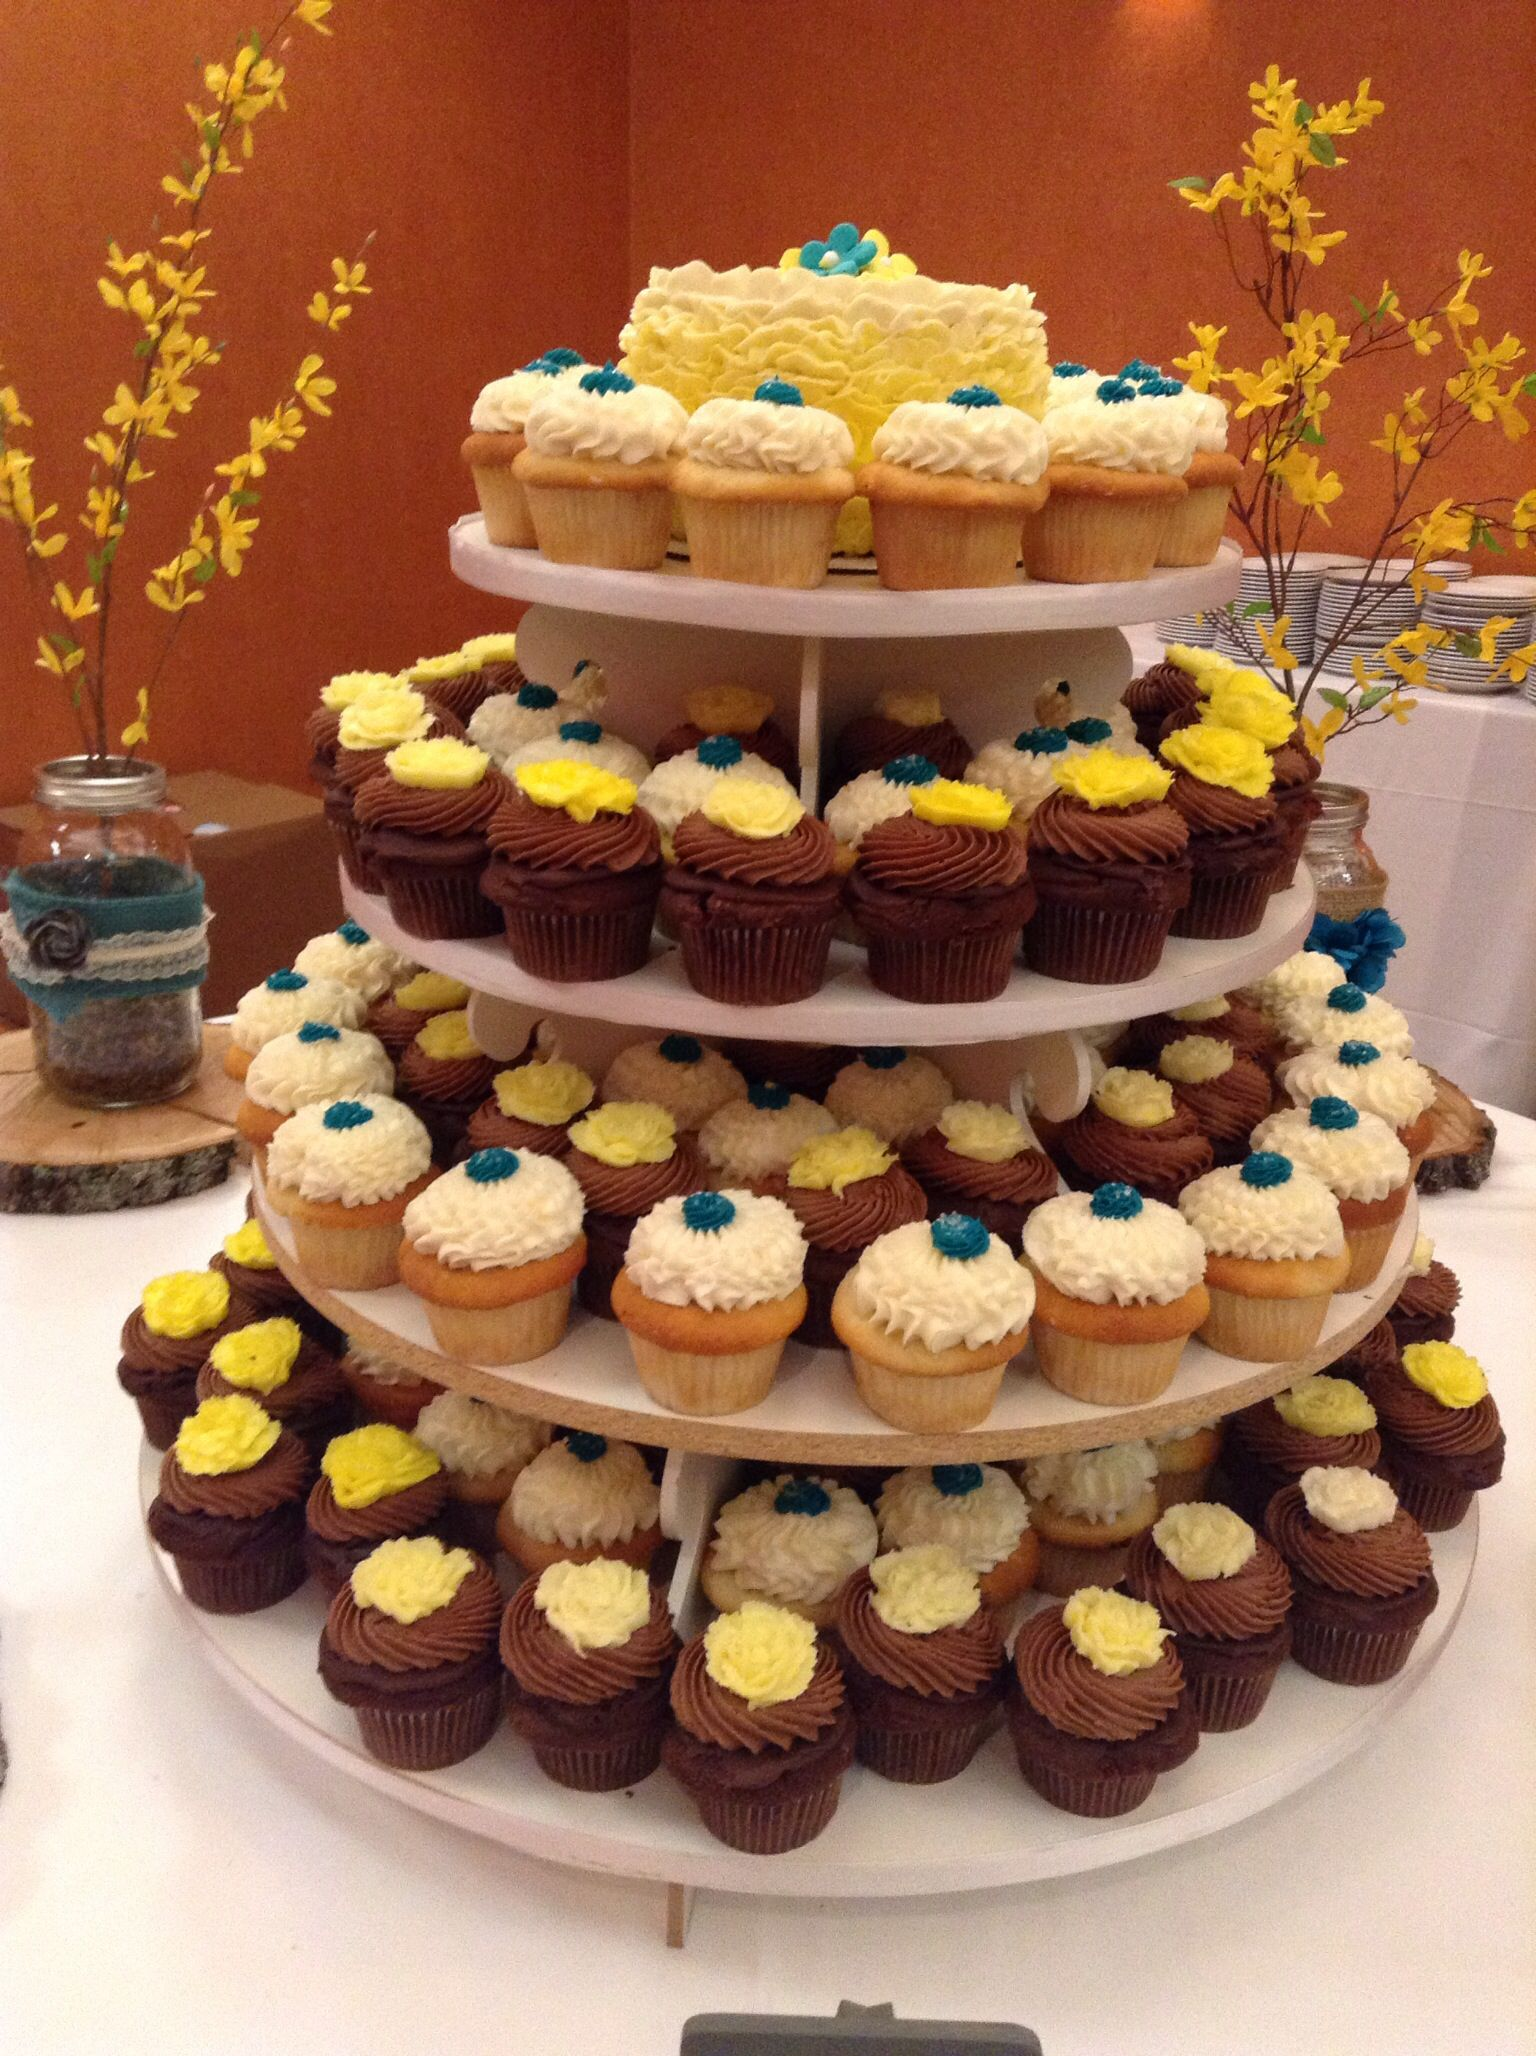 Hochzeit Cupcakes Weddings By Serendipities Cupcakes In Lincoln Ne Serendipities